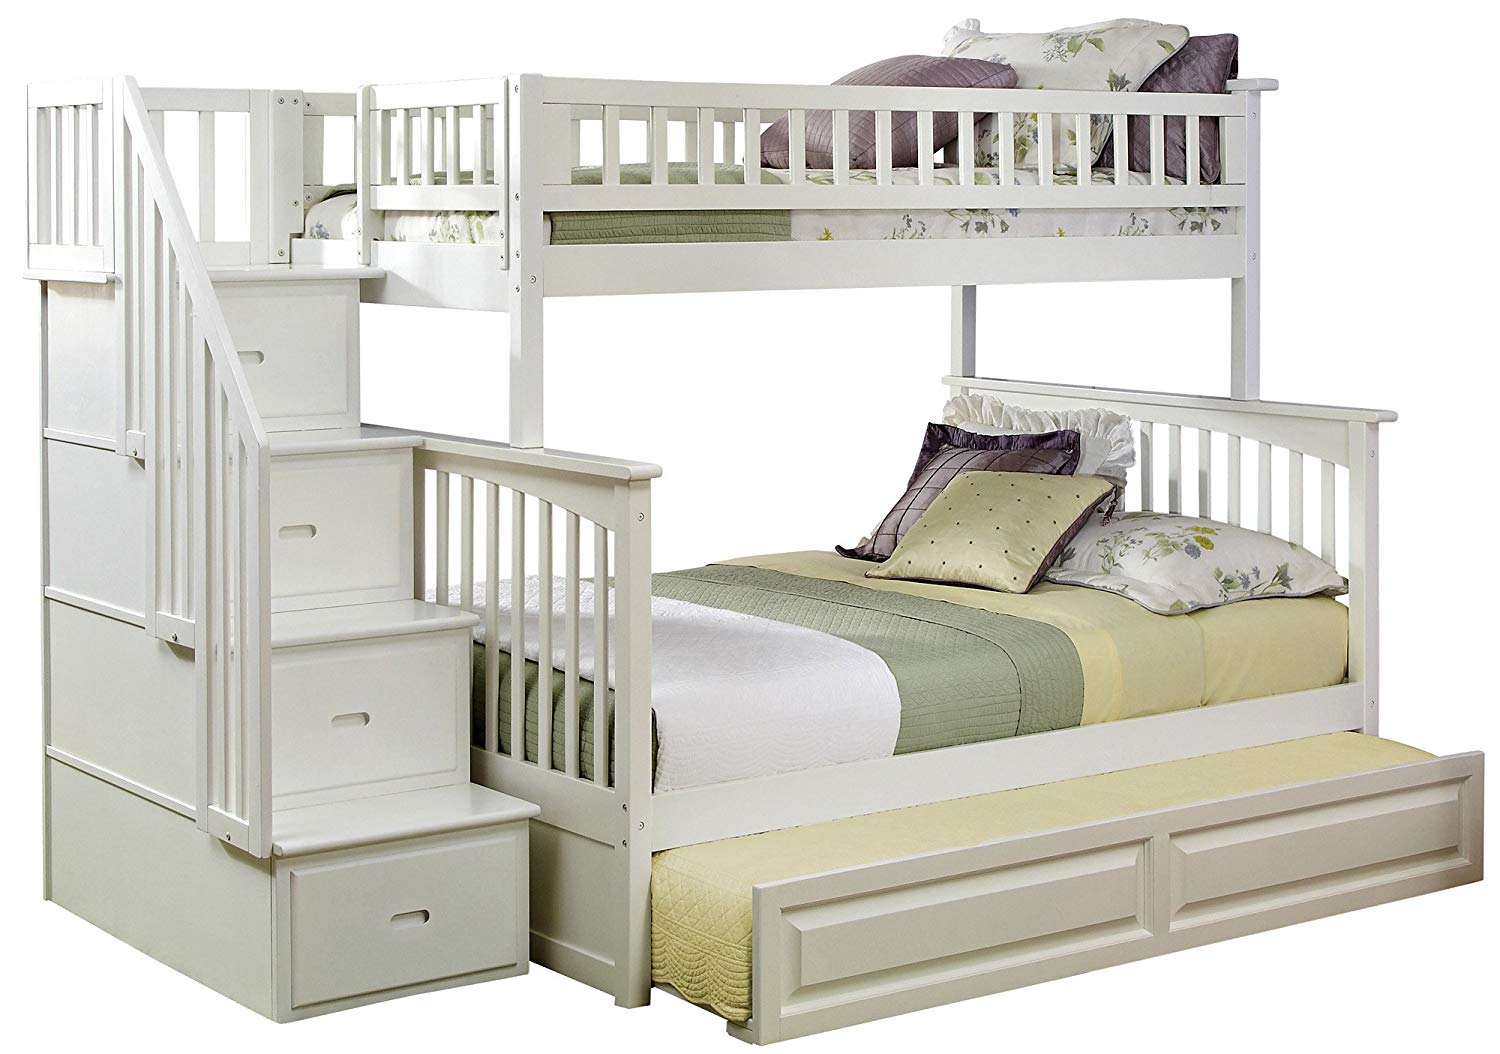 full over full bunk beds with trundle and stairs amazon.com: atlantic furniture columbia staircase bunk bed with trundle bed, HDJYUIL